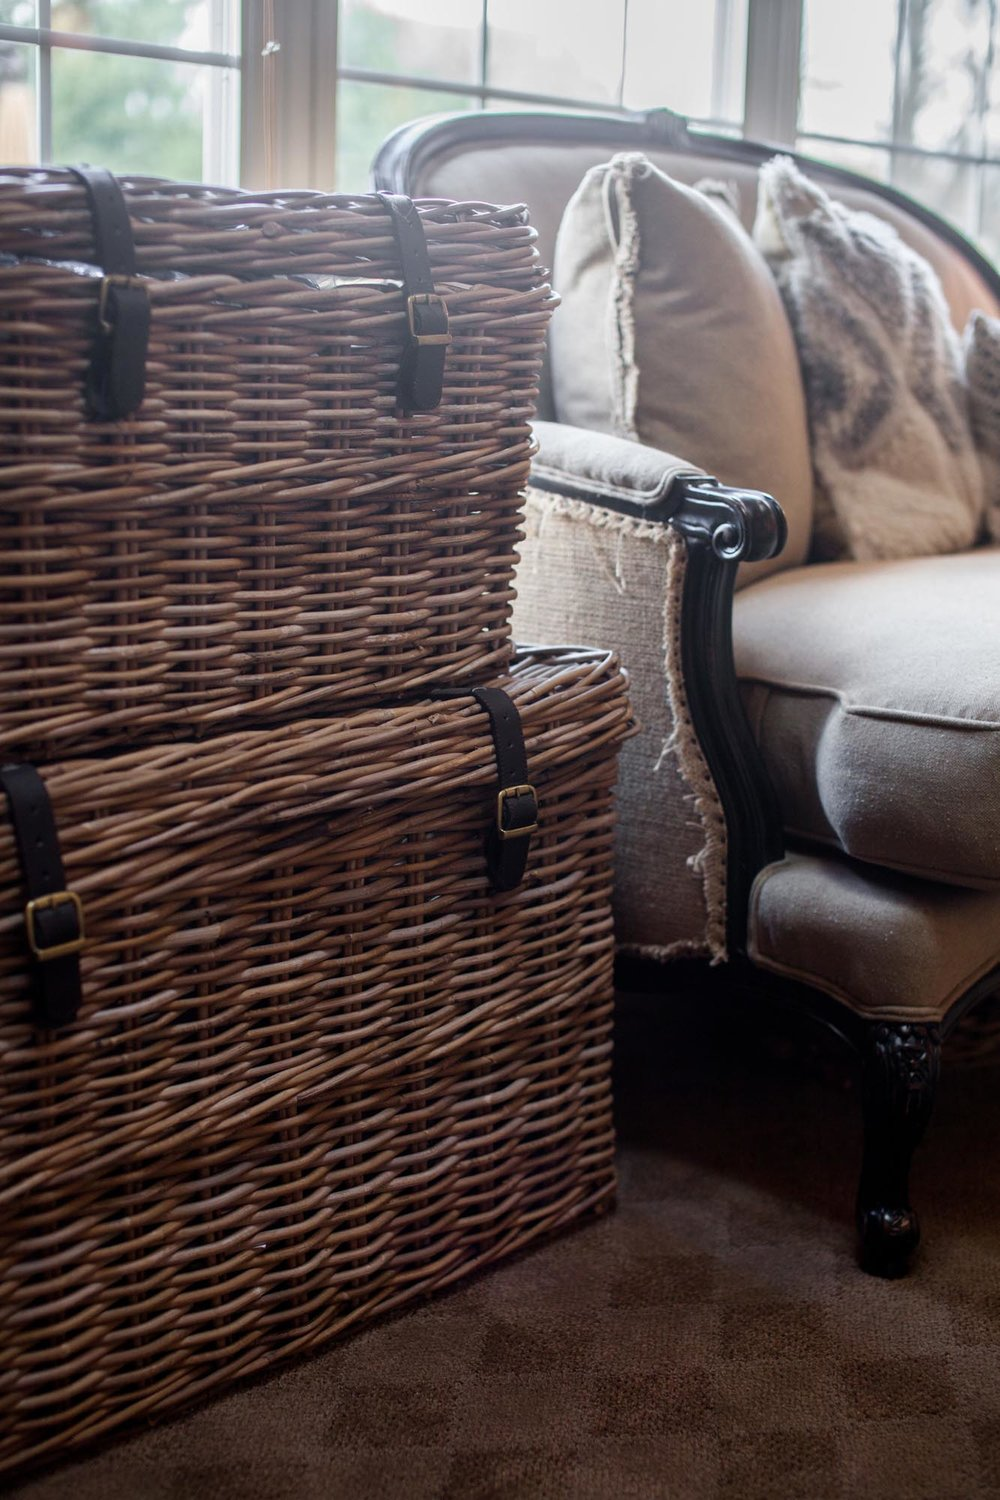 Stacked wicker chests next to beige colored love seat